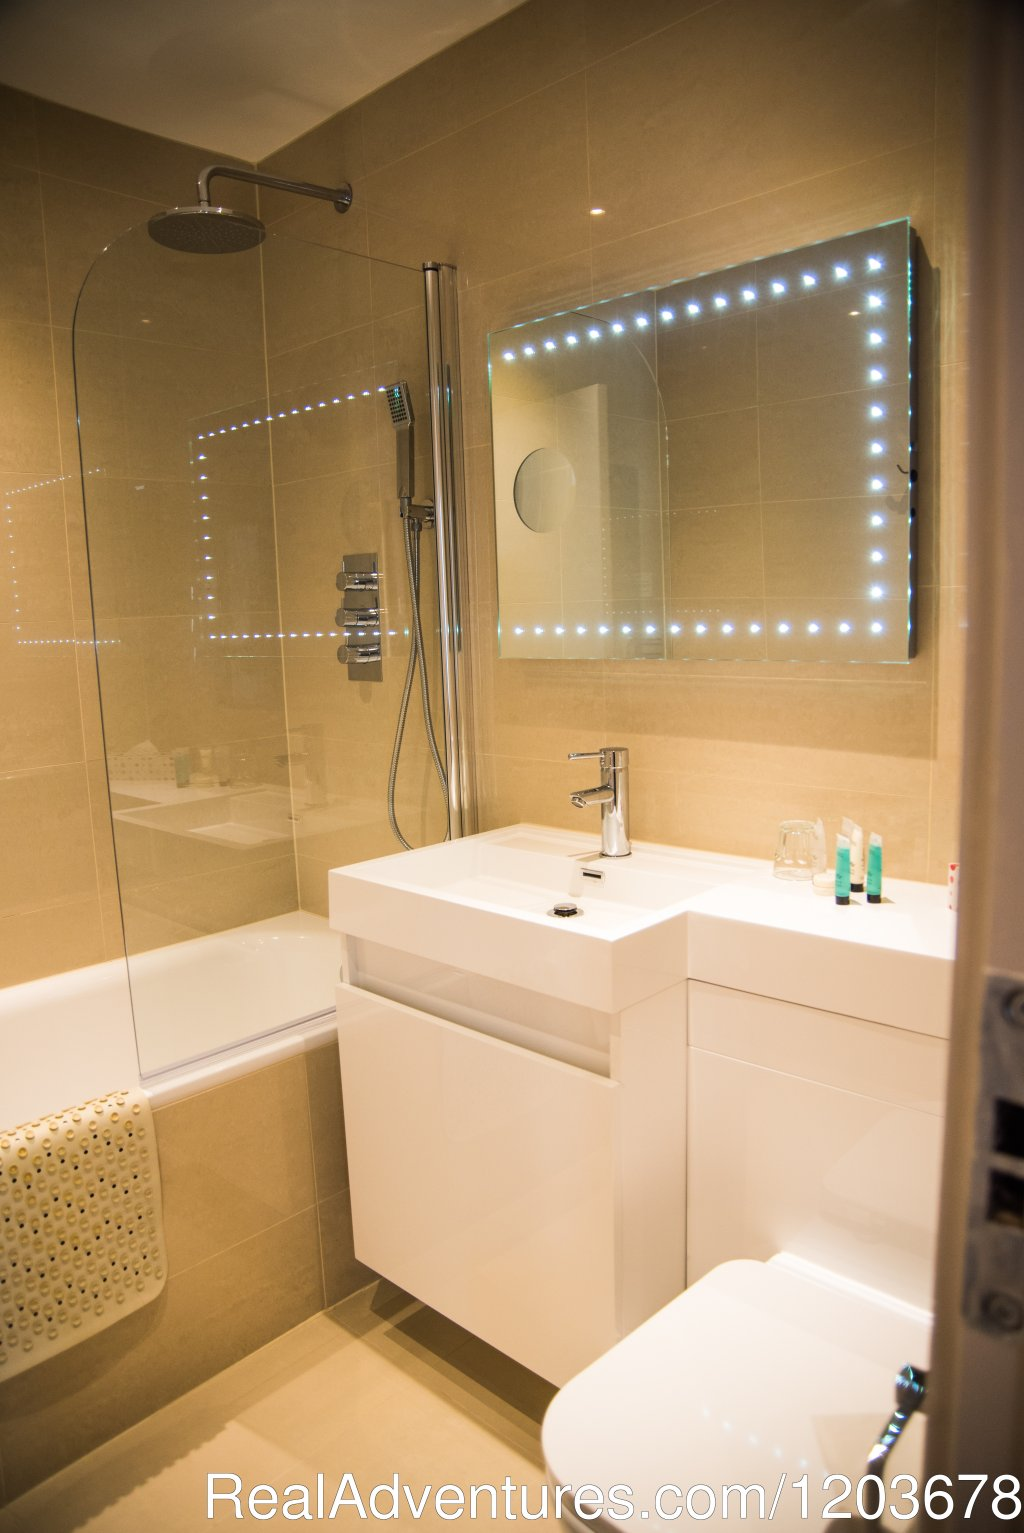 Executive bathroom | Image #6/10 | London Lodge Town House Hotel